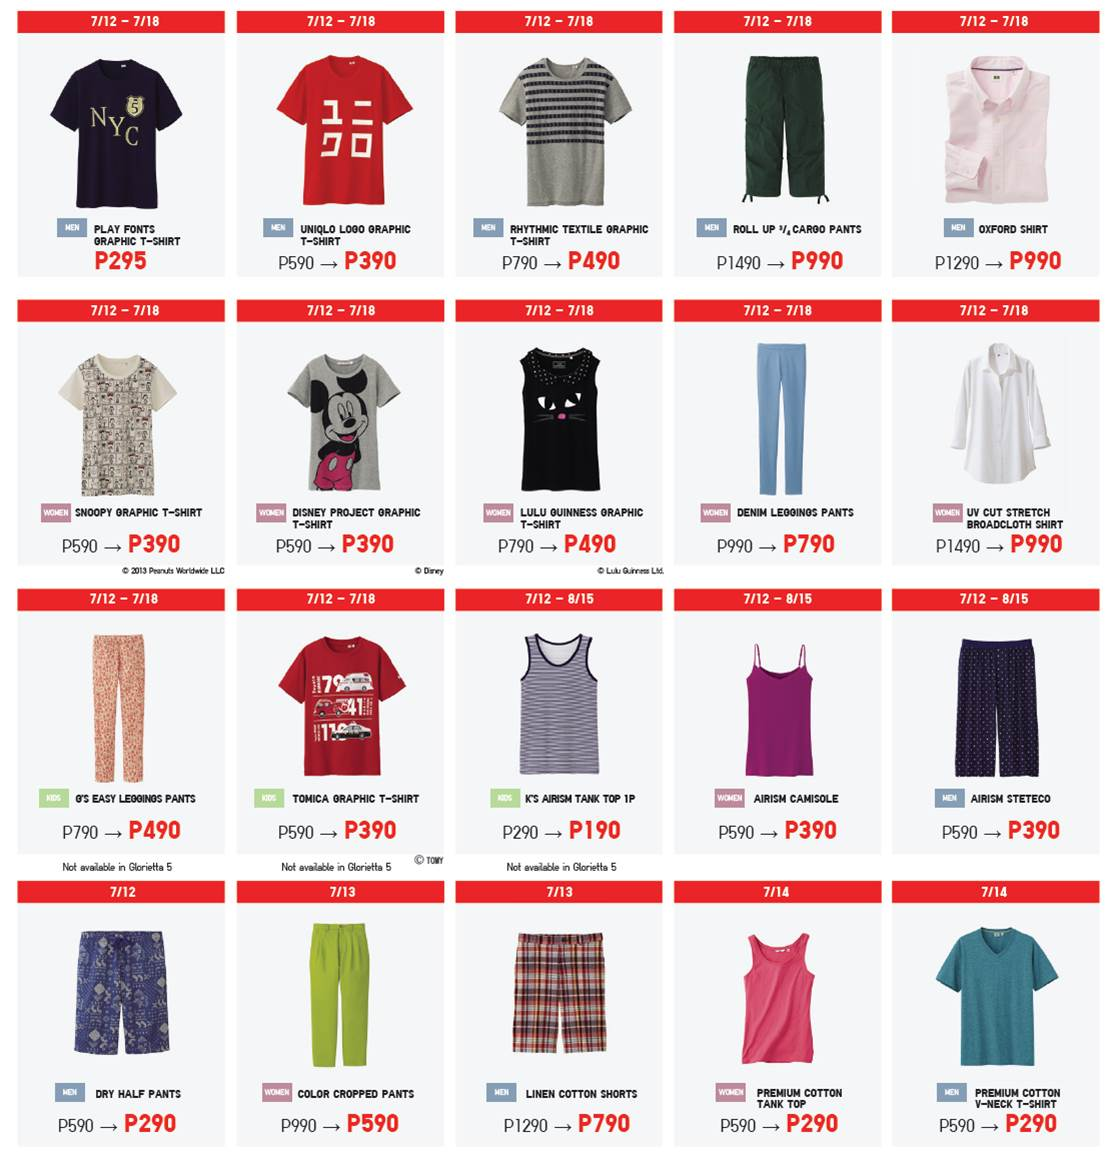 UNIQLO Entire sale items